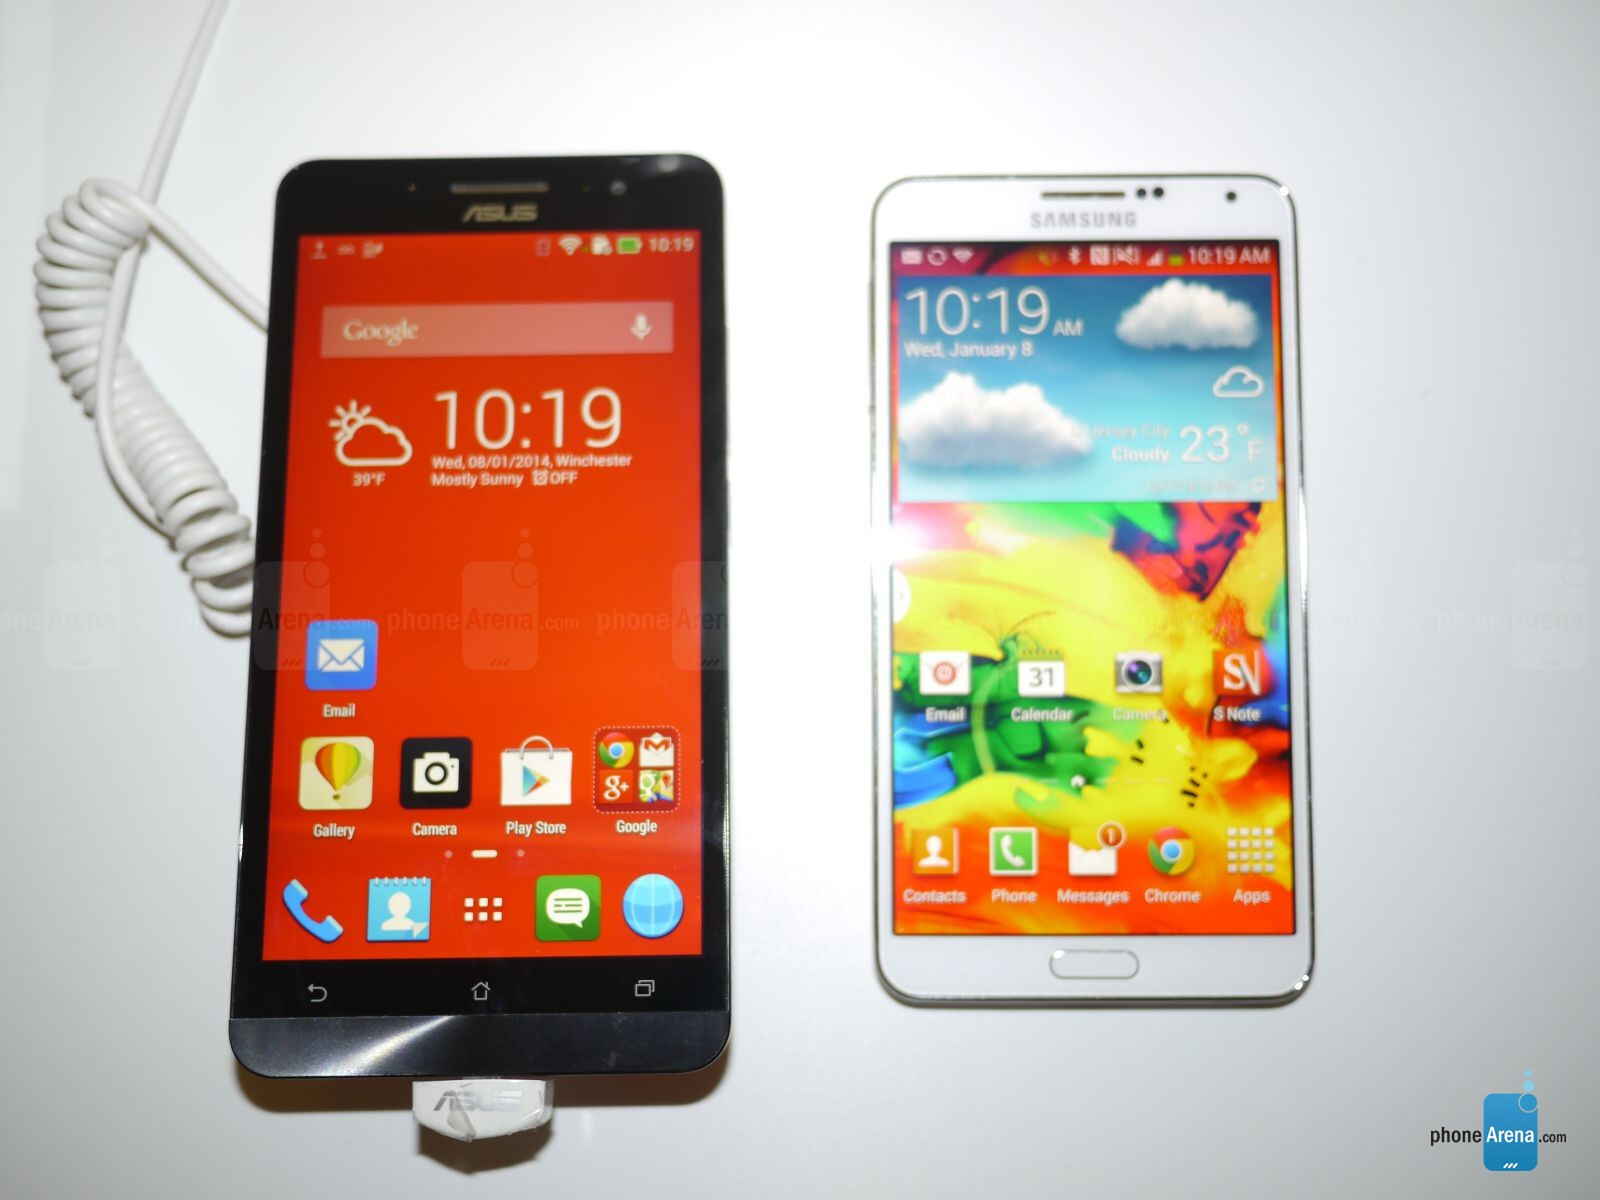 Asus zenfone 6 does not bend like apple iphone 6 plus - Asus Zenfone 6 Vs Samsung Galaxy Note 3 First Look